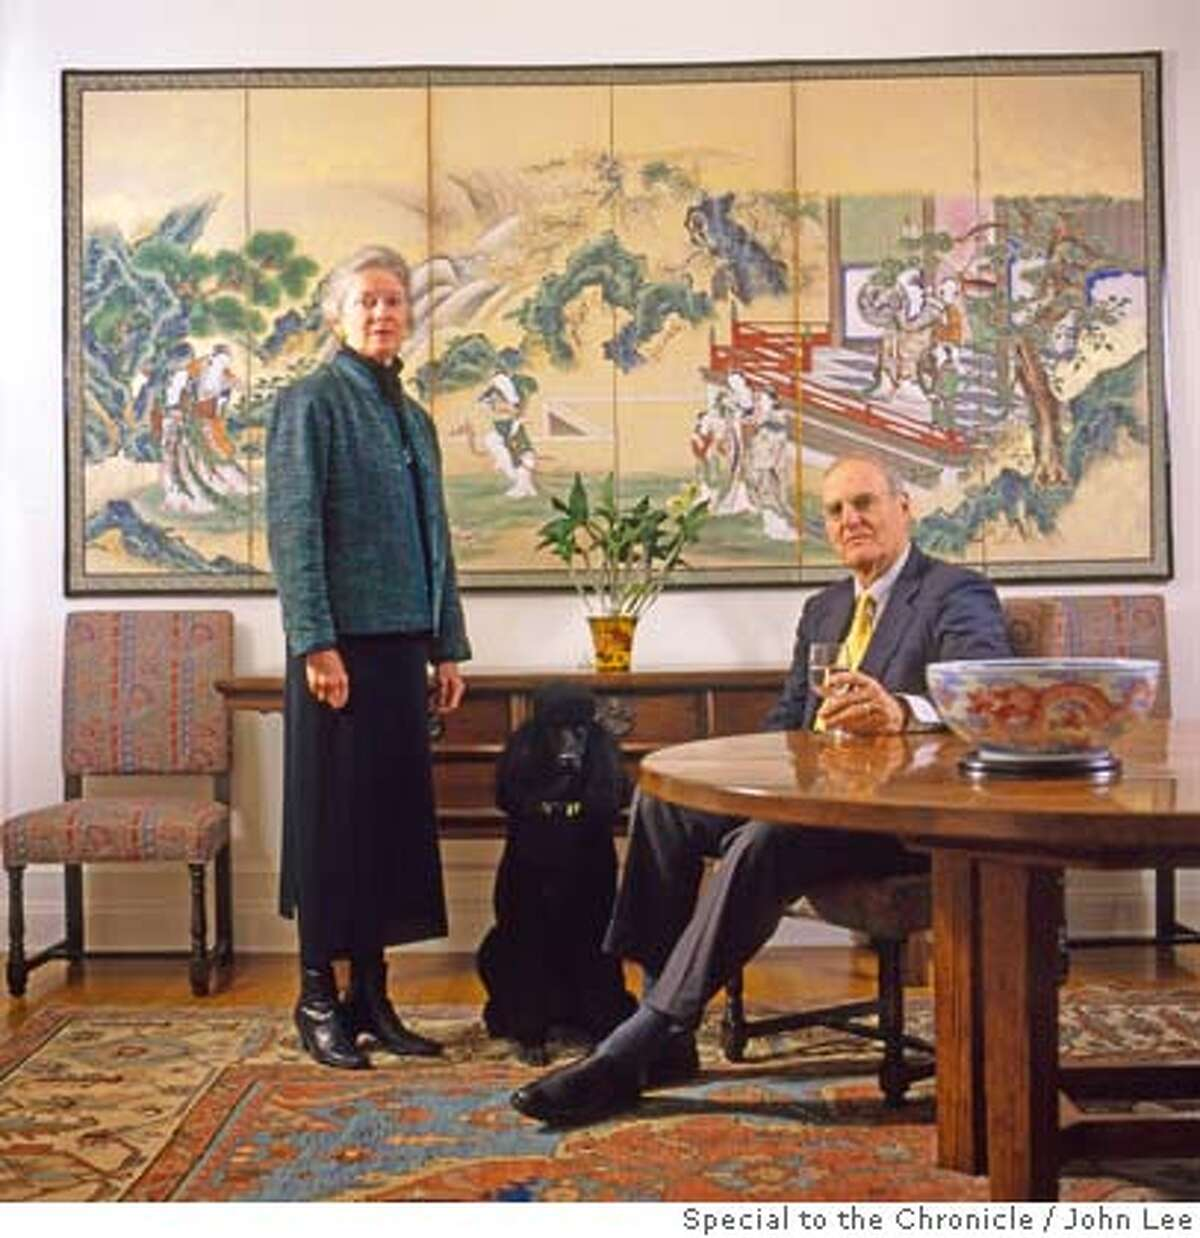 � 2500STEINER_HAMBRECHTS02JOHNLEE.JPG Sally and Bill Hambrecht, with their dog Lulu, in the dining room of their condo at 2500 Steiner in San Francisco's Pacific Heights. For Sam Whiting story on 2500 Steiner. By JOHN LEE/SPECIAL TO THE CHRONICLE